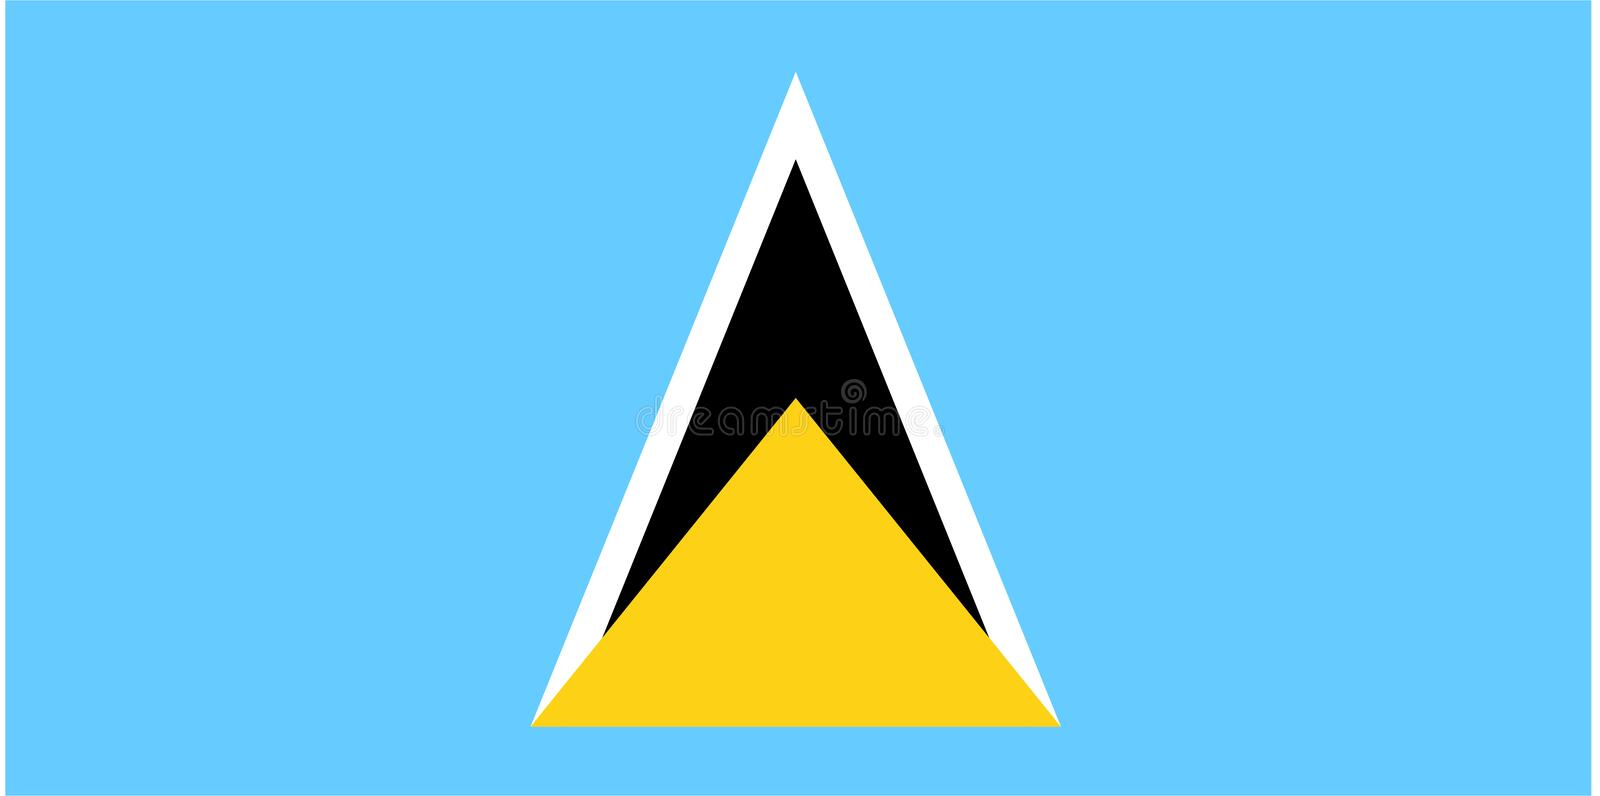 Indicateur de saint Lucia illustration libre de droits